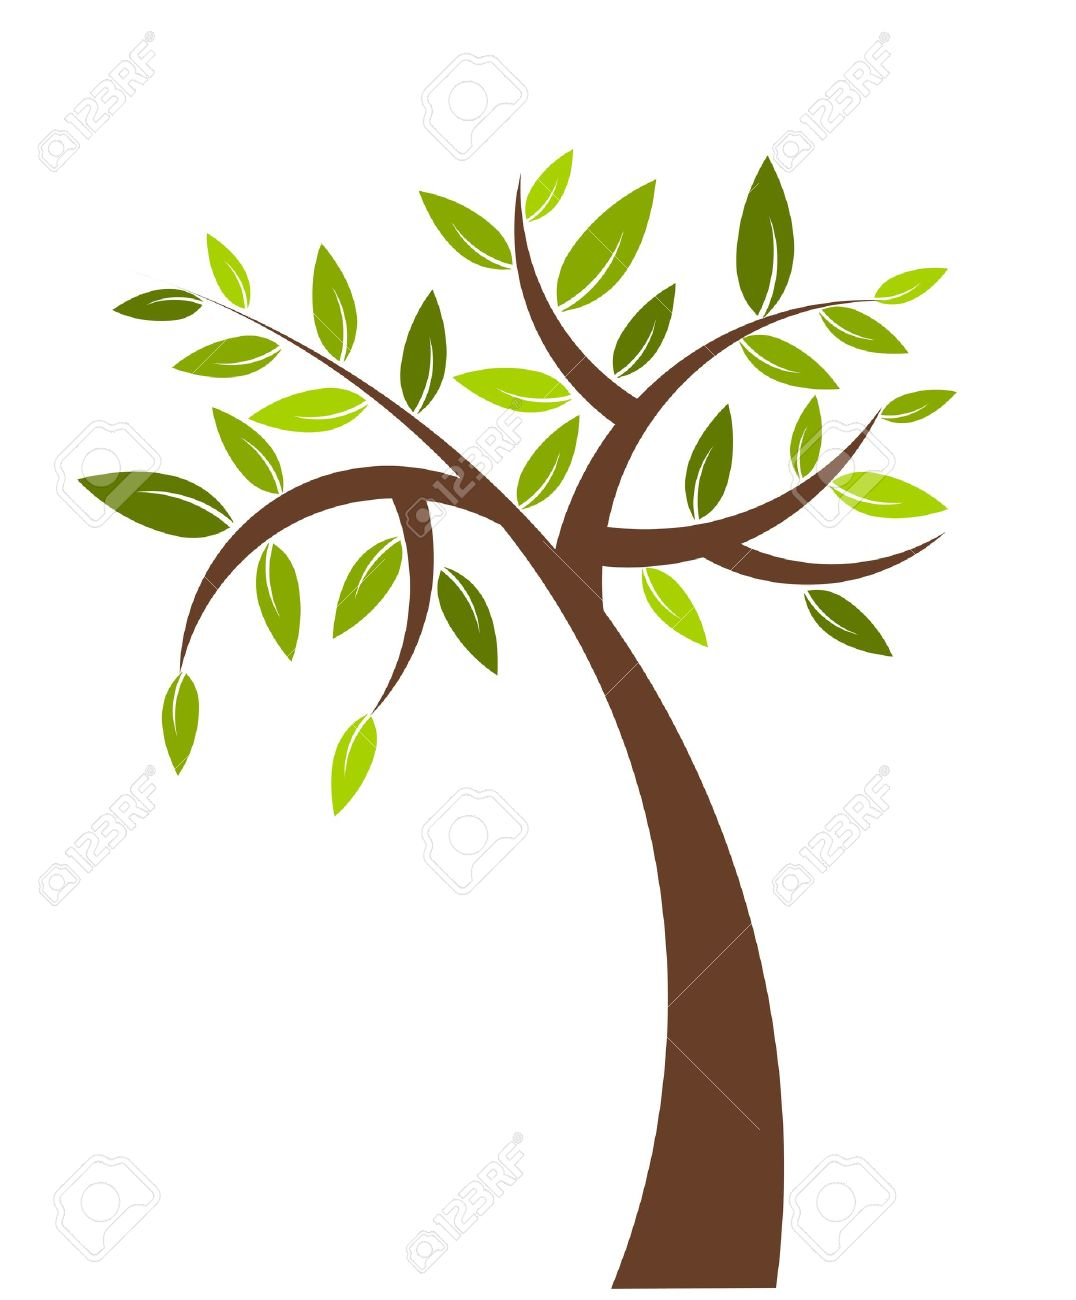 Symbolic Tree With Green Leaves.